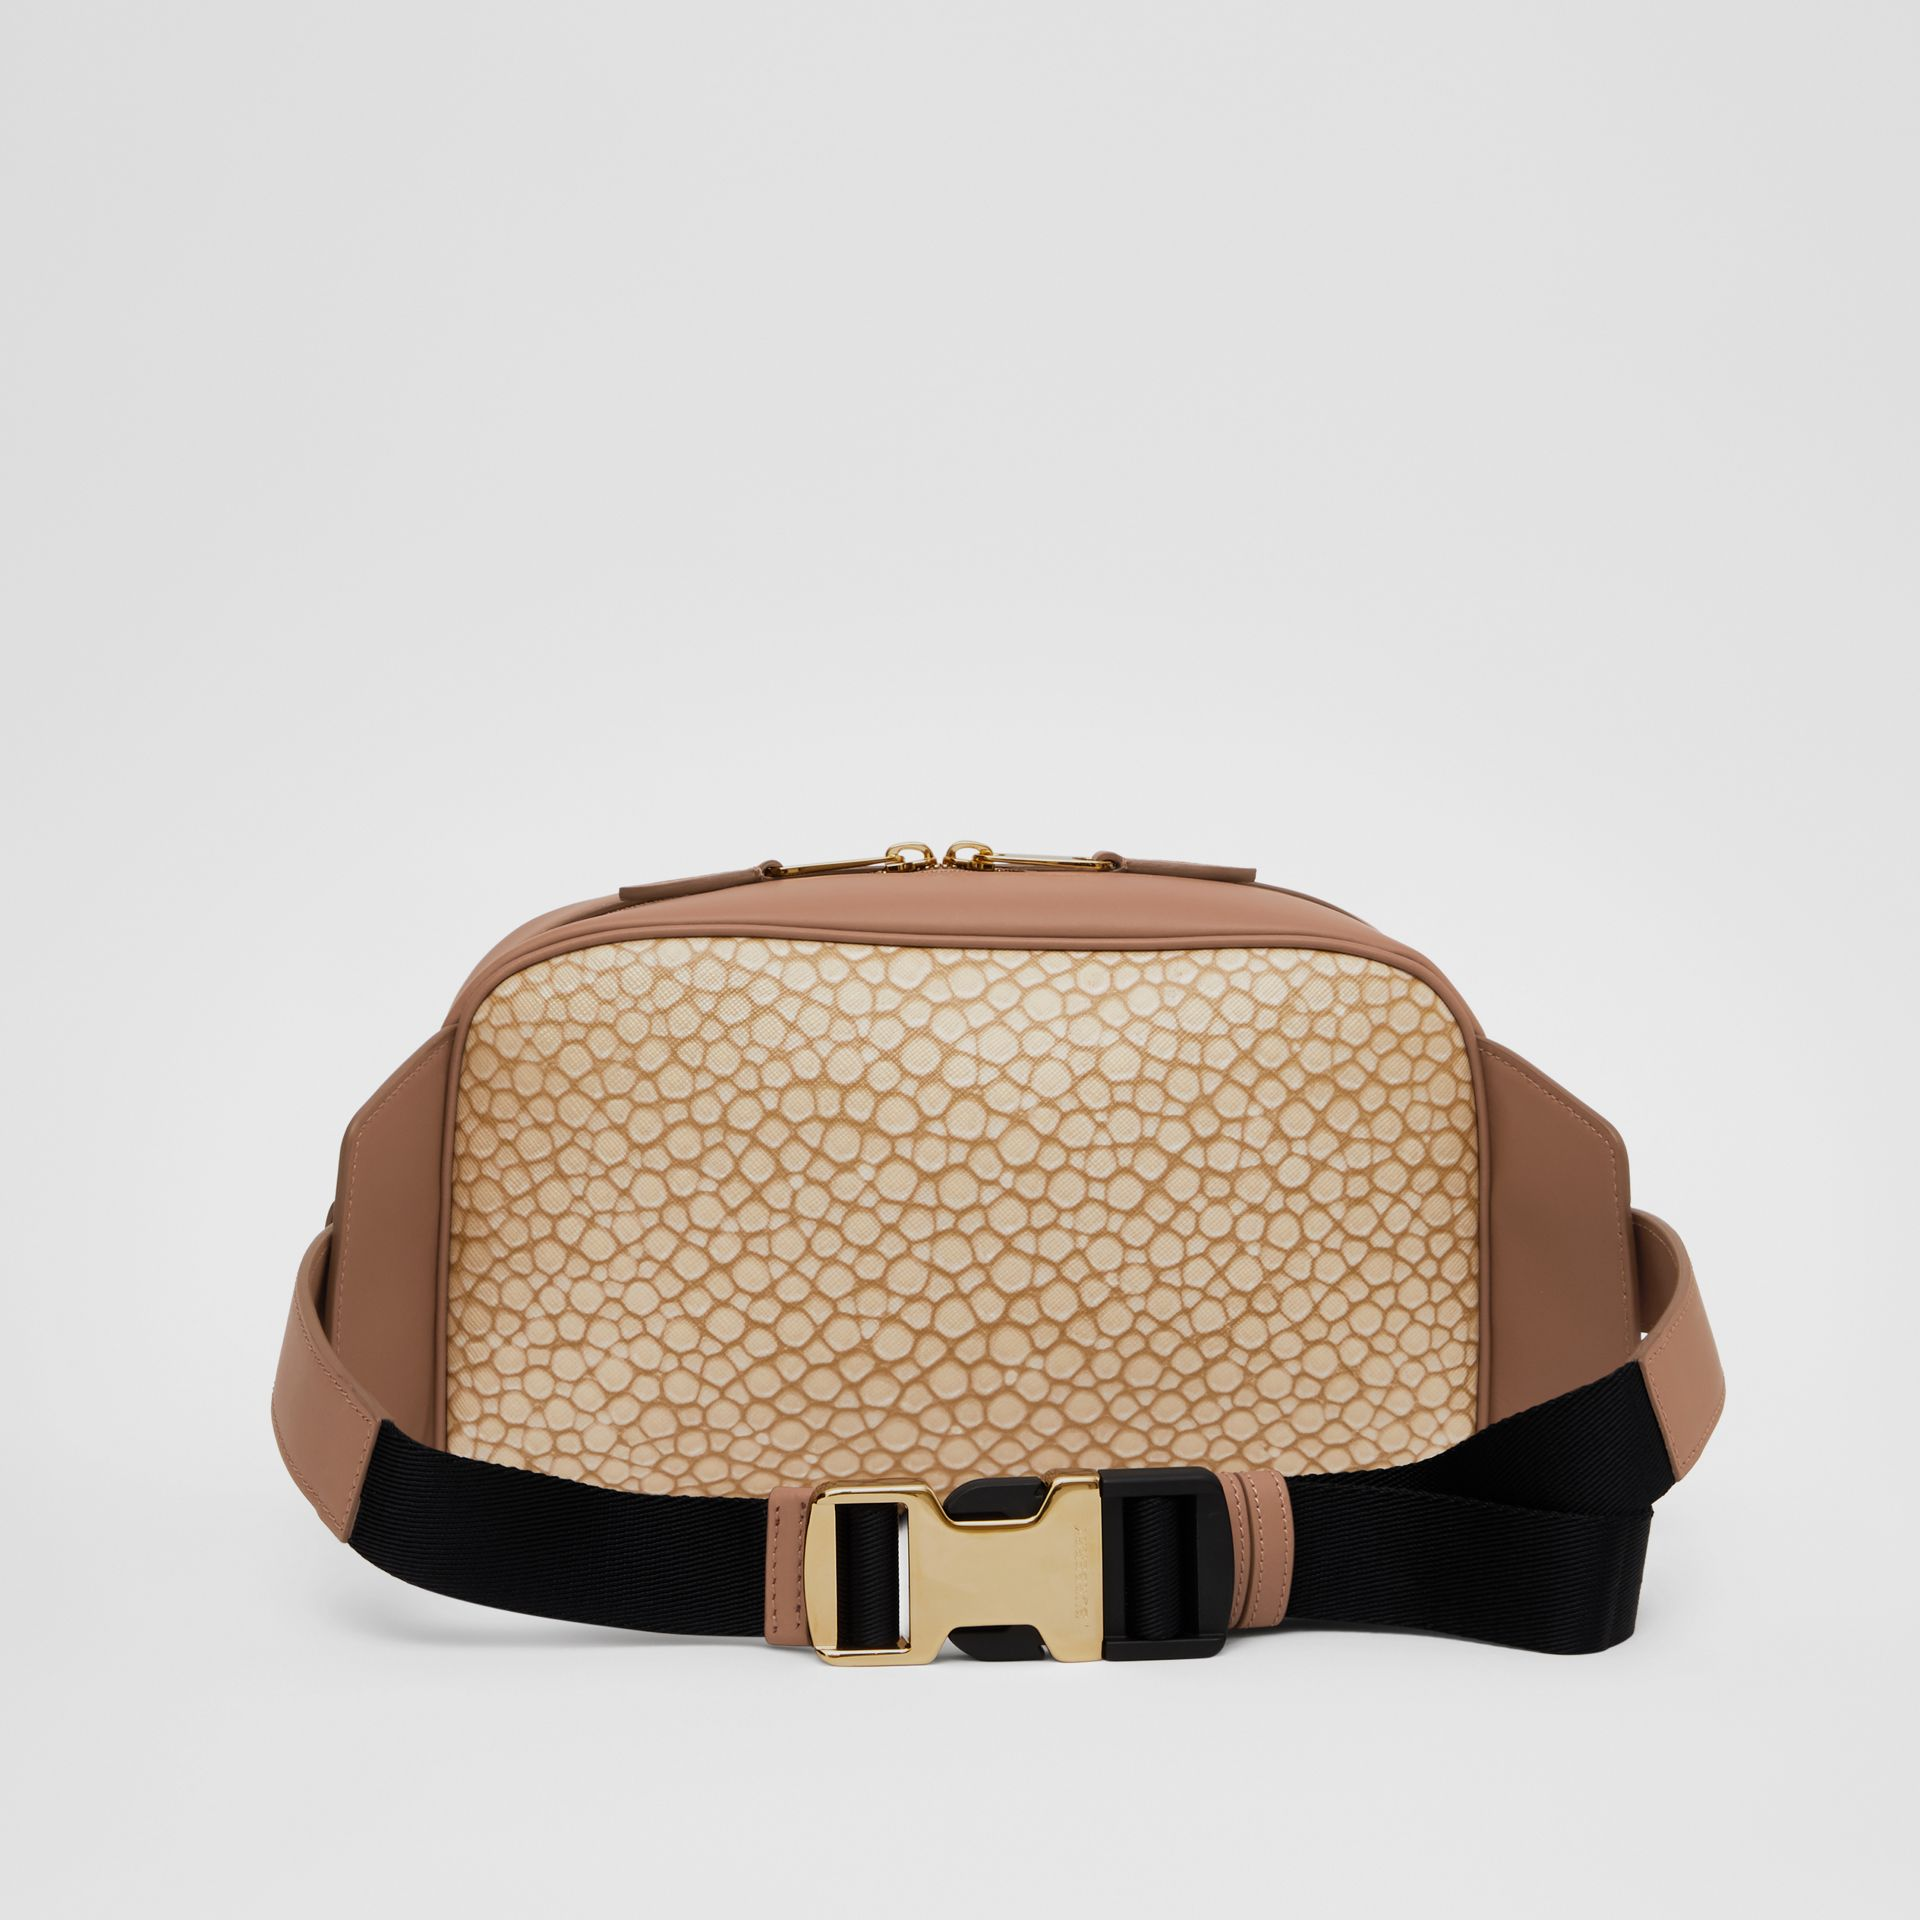 Fish-scale Print and Leather Cube Bum Bag in Light Sand - Women | Burberry Australia - gallery image 5